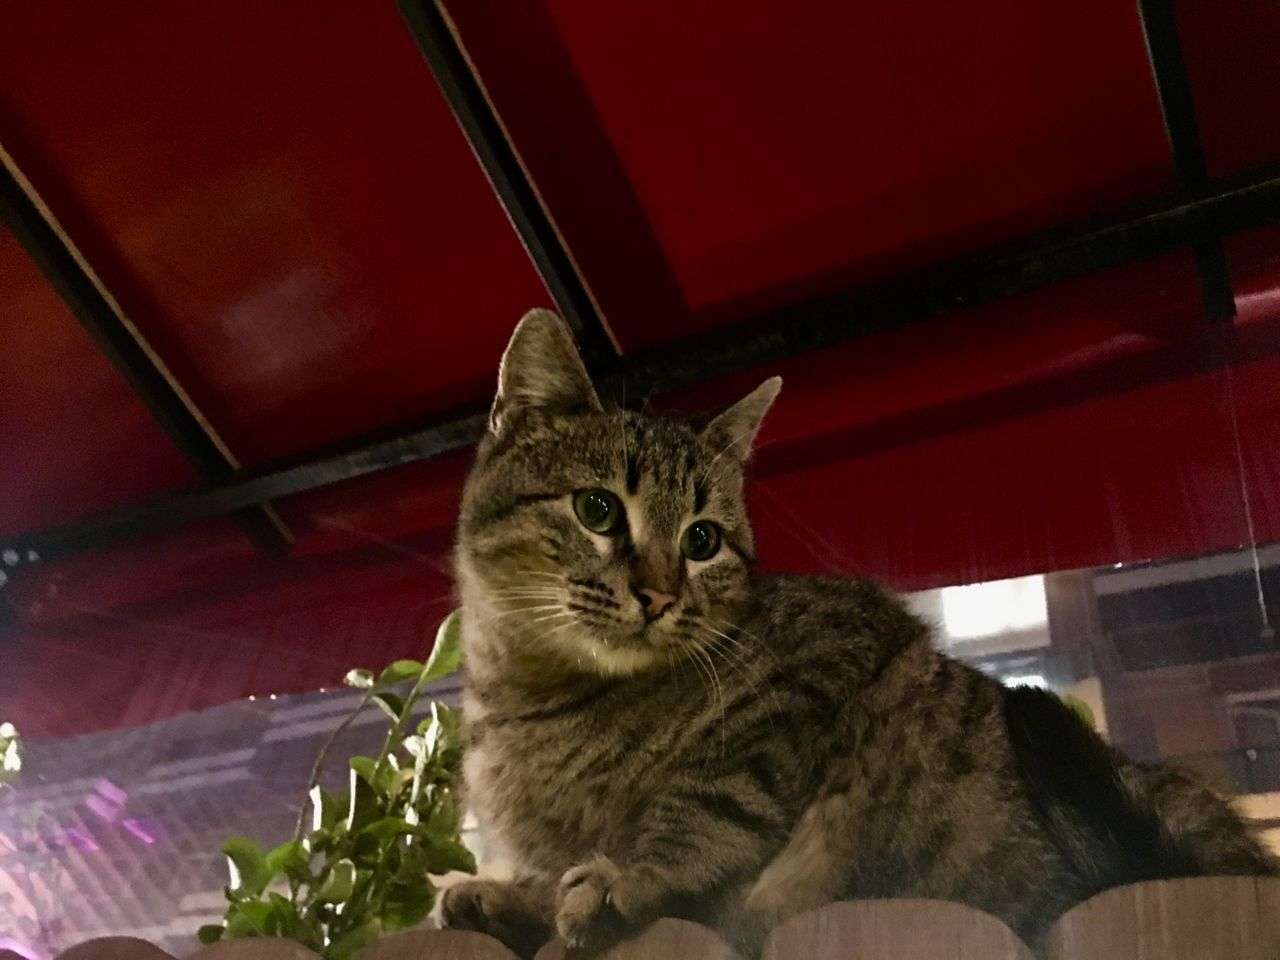 cat, pets, domestic animals, feline, domestic, domestic cat, one animal, mammal, vertebrate, indoors, no people, looking at camera, relaxation, portrait, home interior, sitting, whisker, tabby